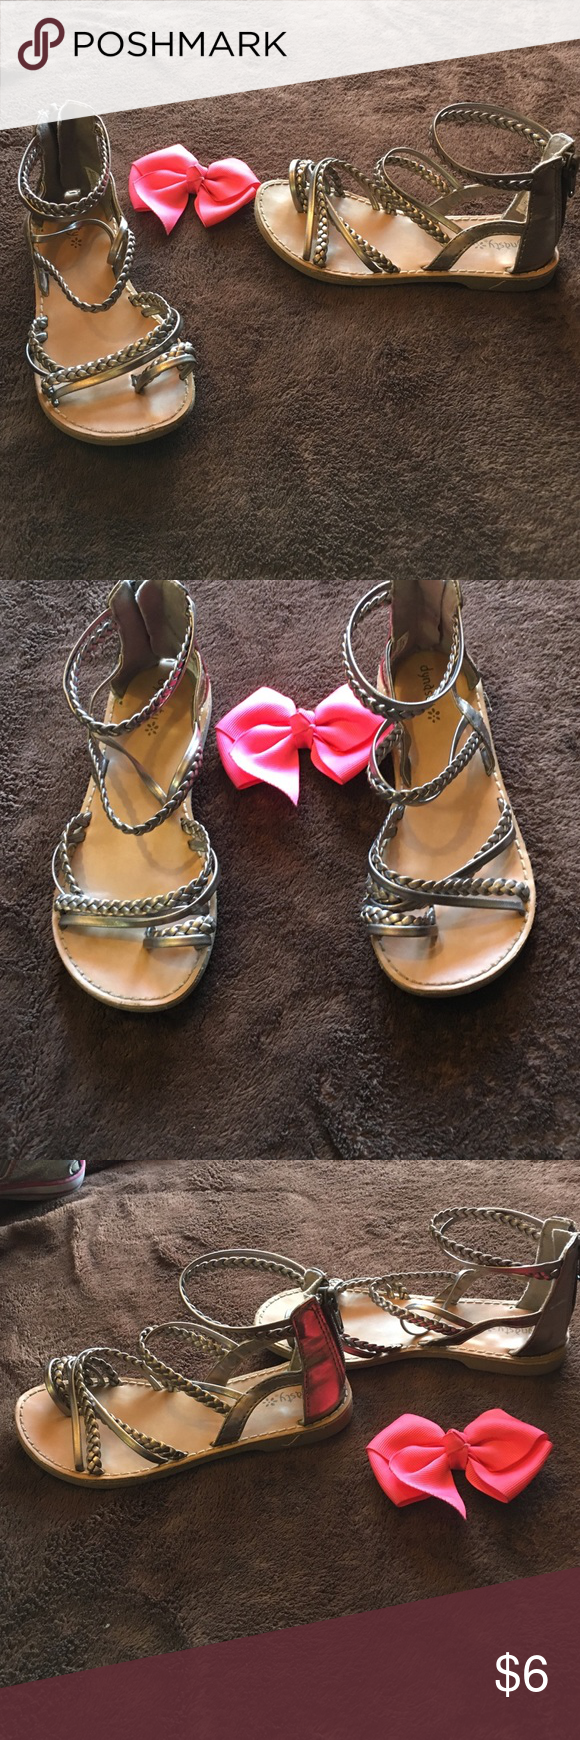 🎀 cute girls strappy sandals 🎀 Girls metallic gray/bronze color sandals in size 11 in good condition Shoes Sandals & Flip Flops